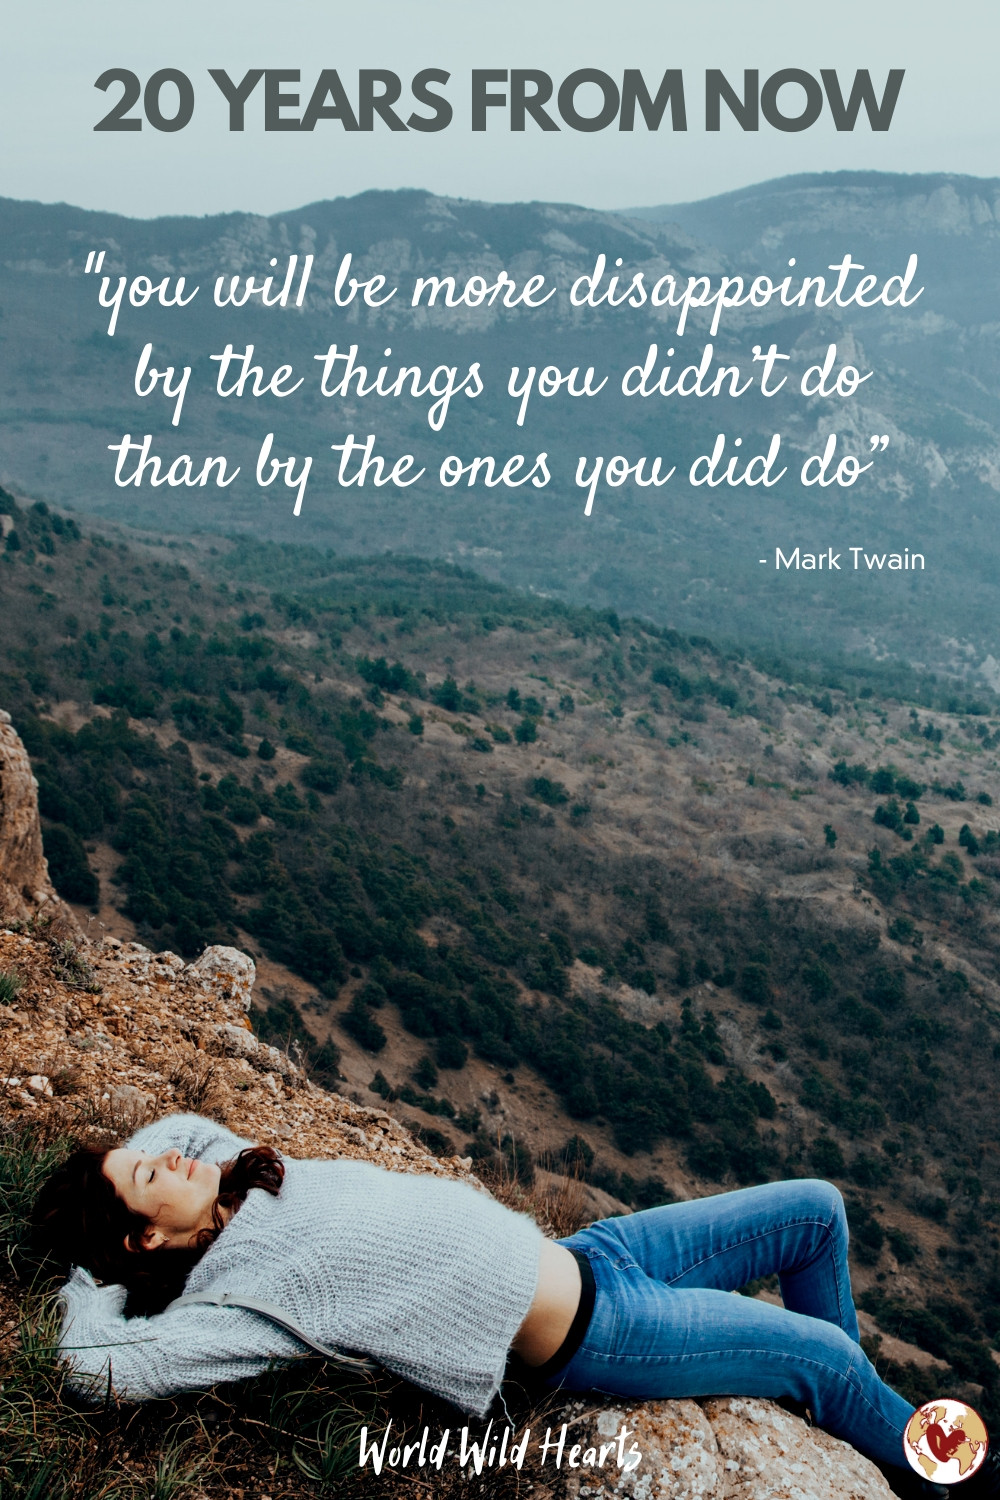 Mark Twain famous travel quote